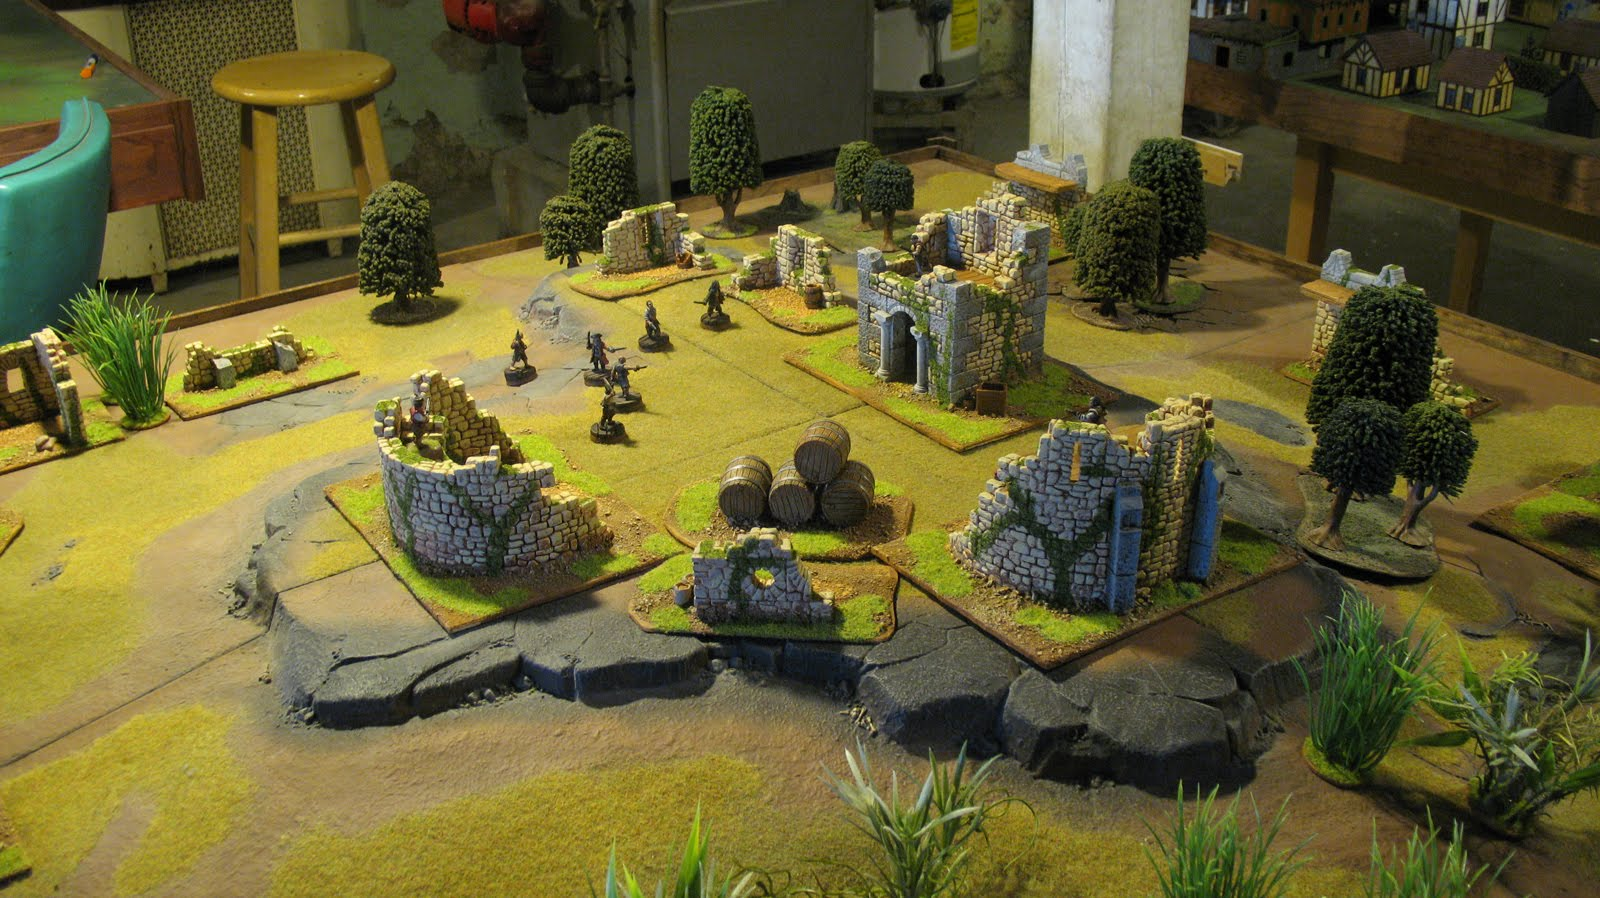 wargaming video games - photo #20